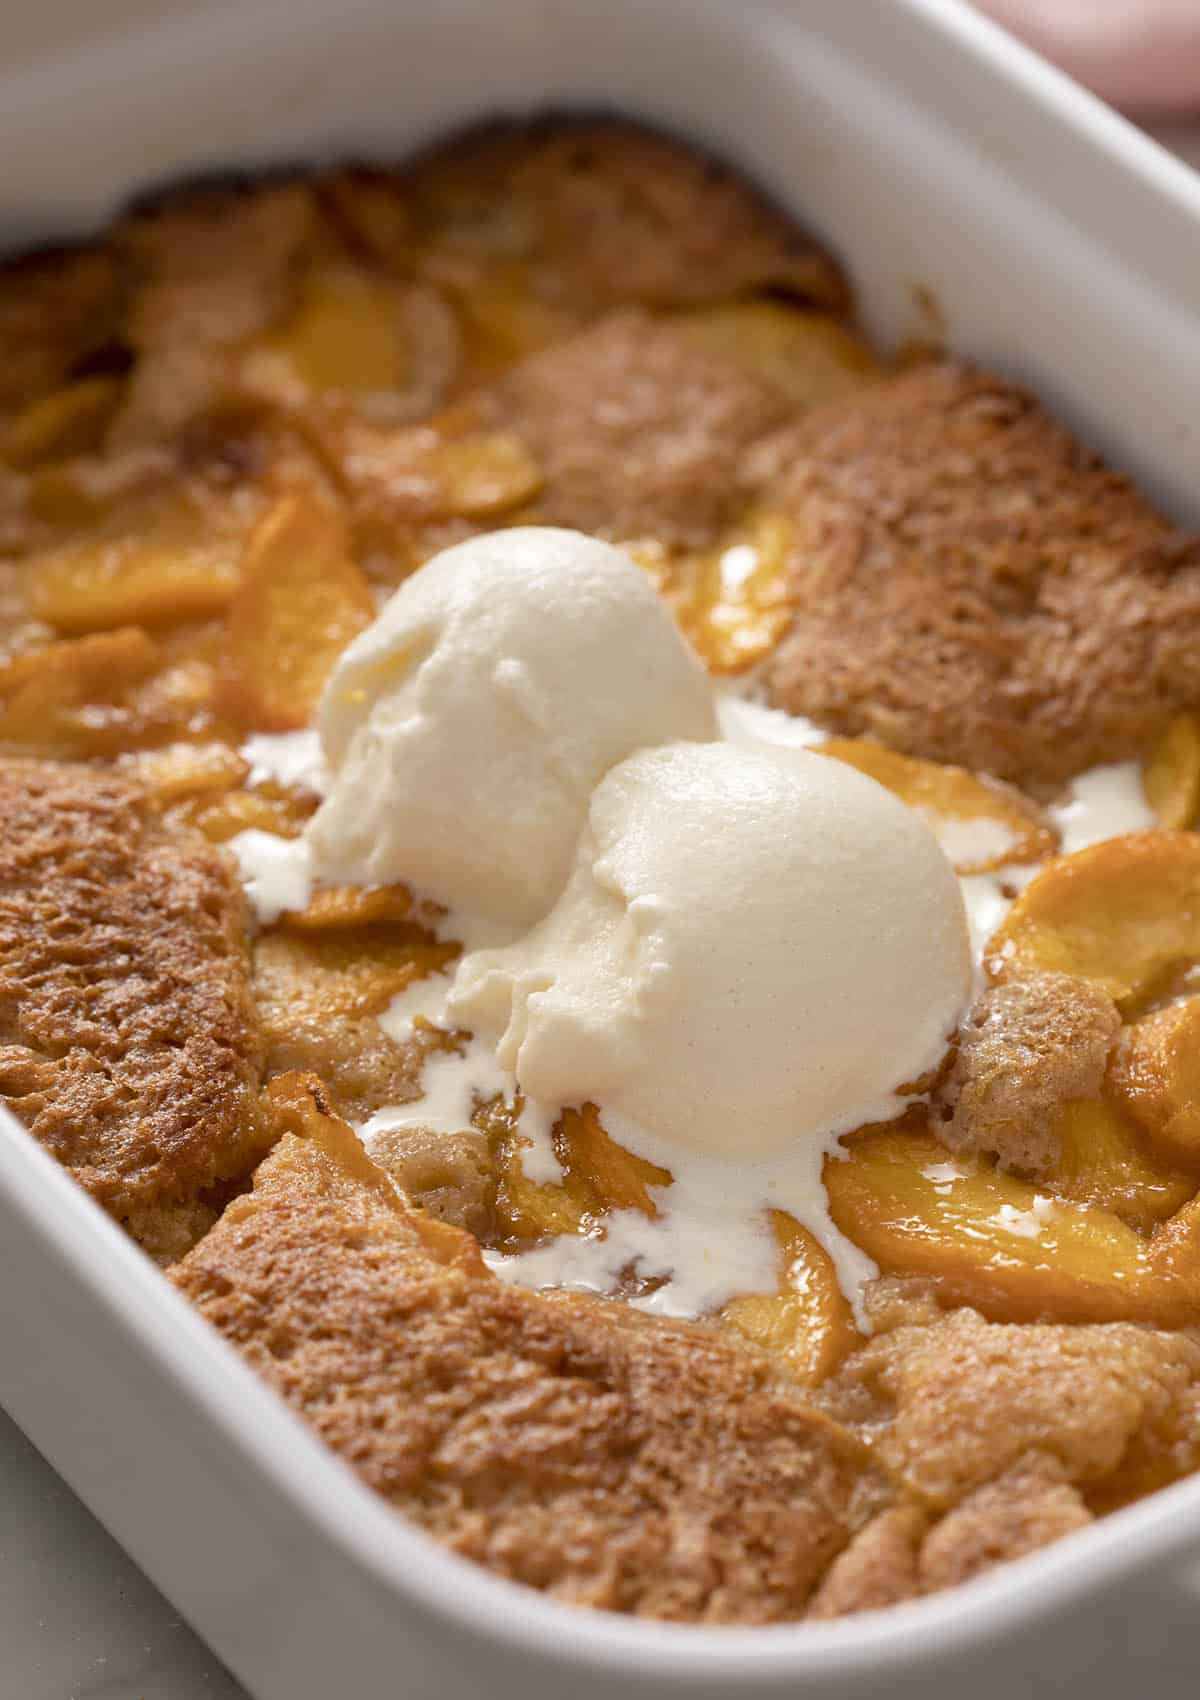 A delicious peach cobbler topped with two scoops of vanilla ice cream.